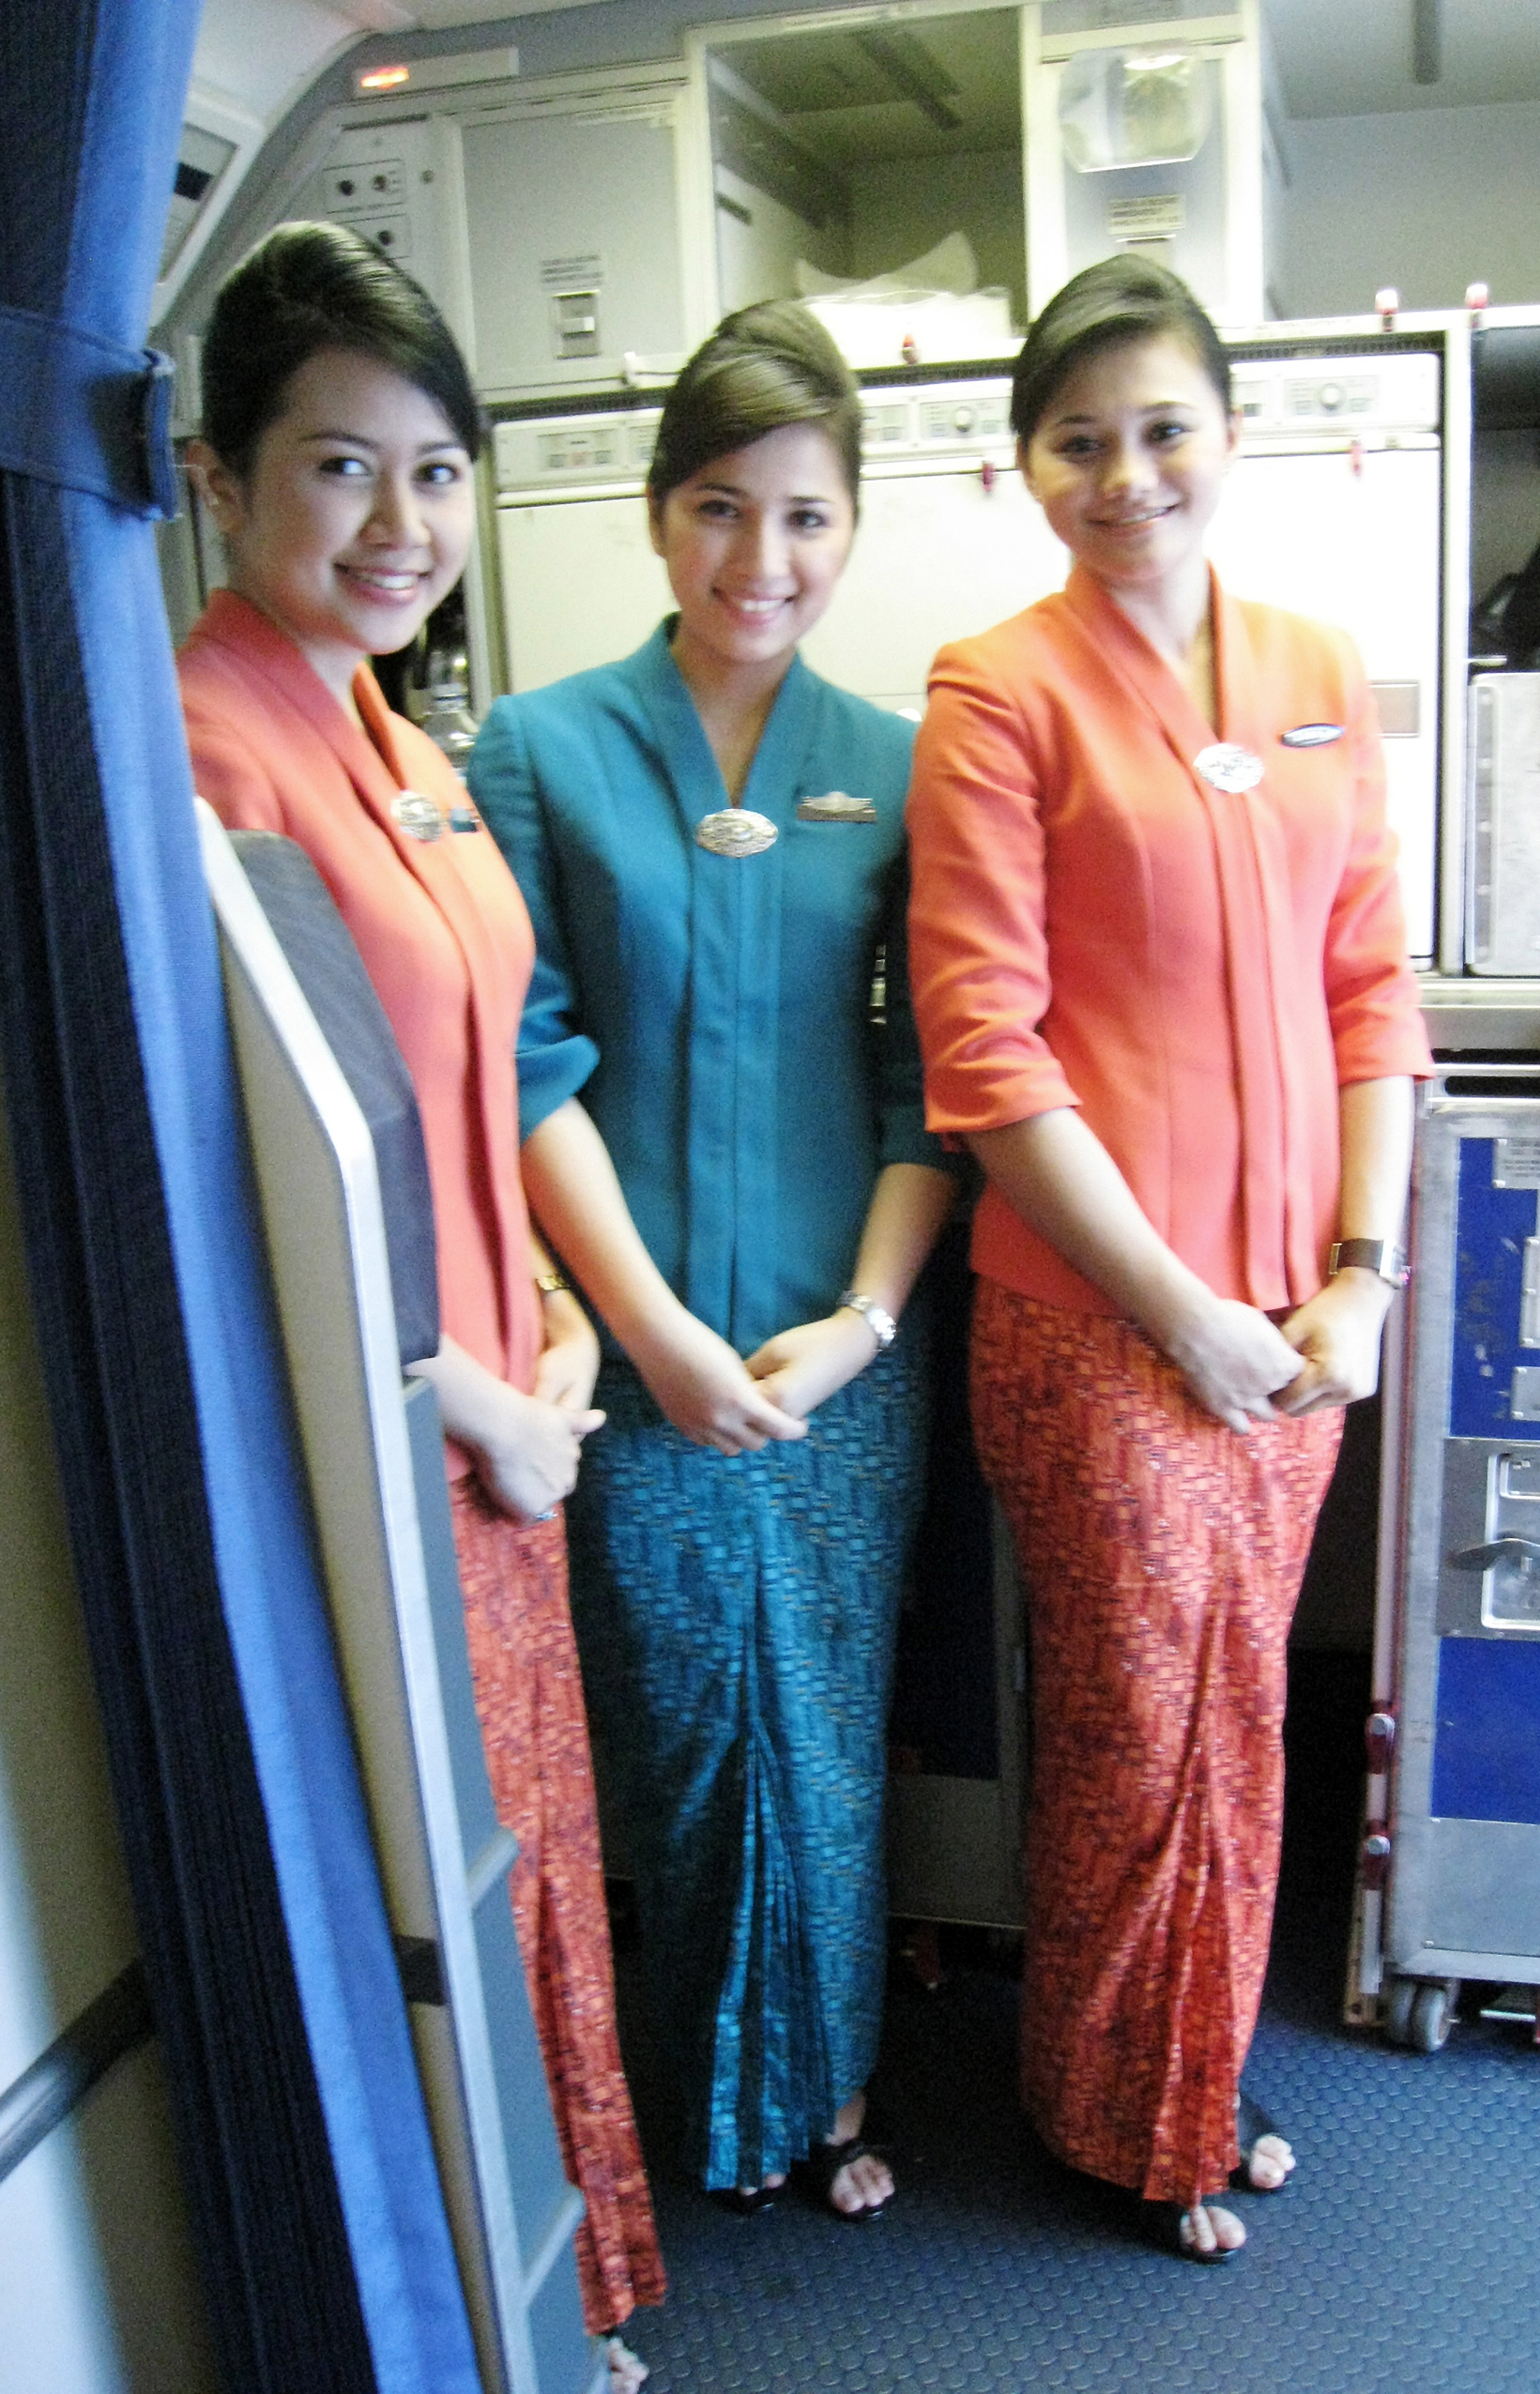 Uniforms and presentation[link] · Garuda Indonesia flight attendants uniform featuring kebaya